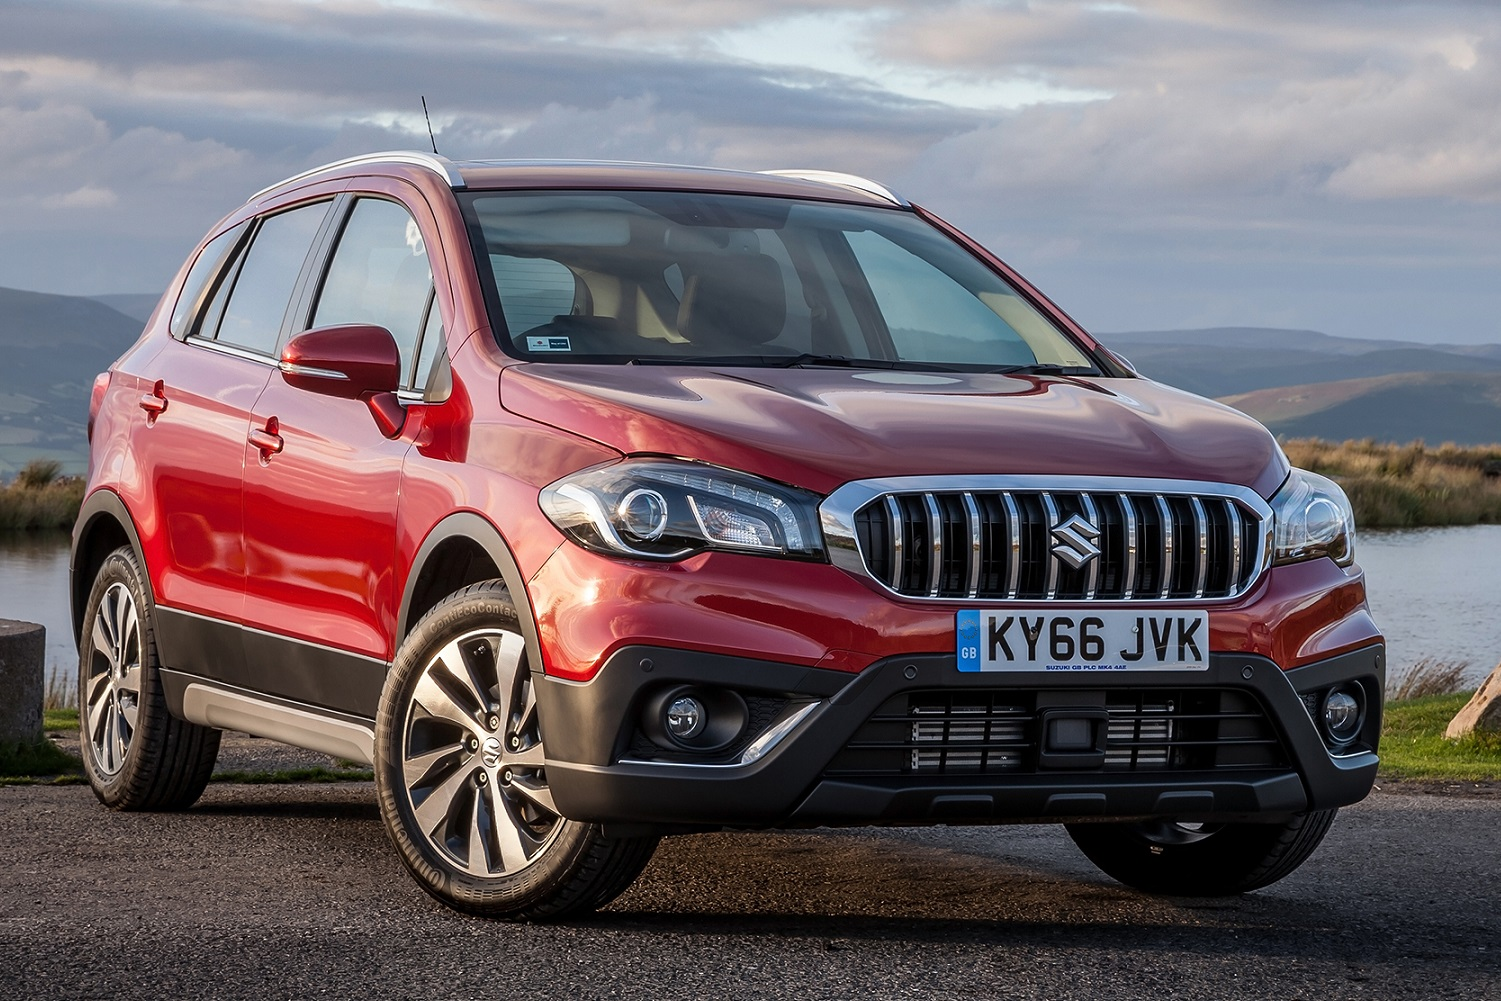 Top 10 Best - 4 Wheel Drive 4x4 - Cars   SUV in the UK 2019